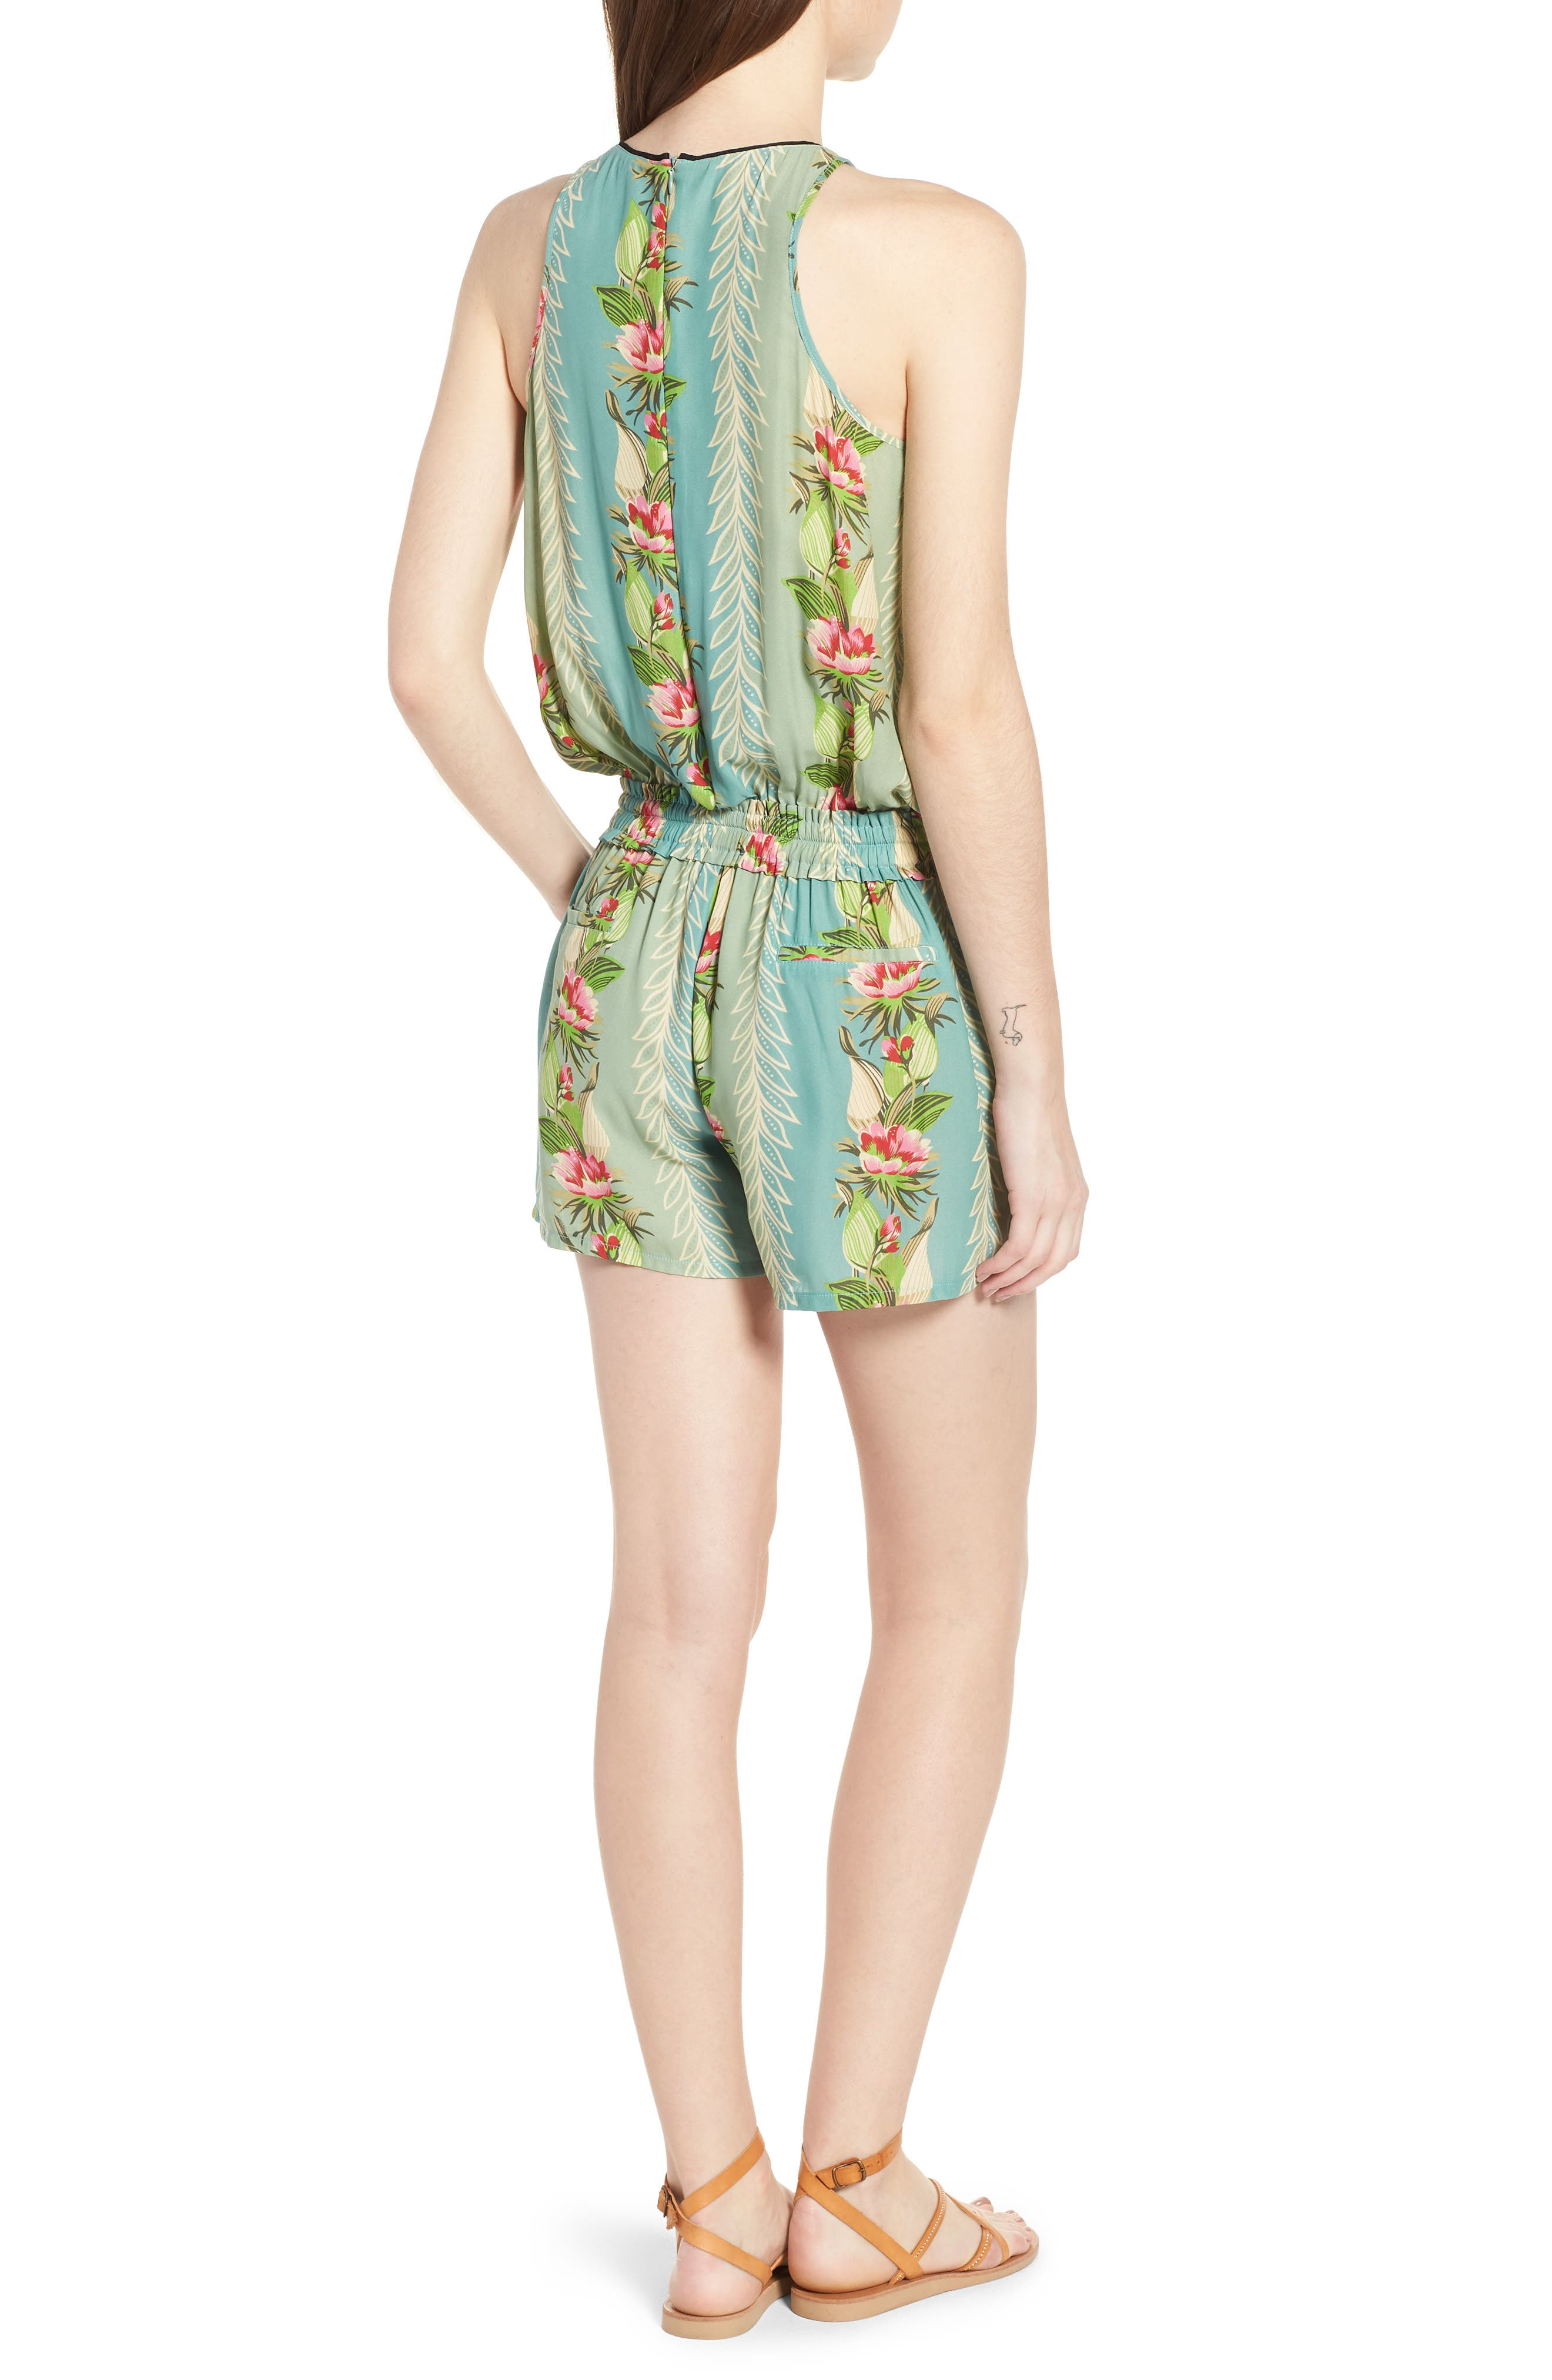 SCOTCH & SODA,                             Print All in One Romper,                             Alternate thumbnail 2, color,                             440